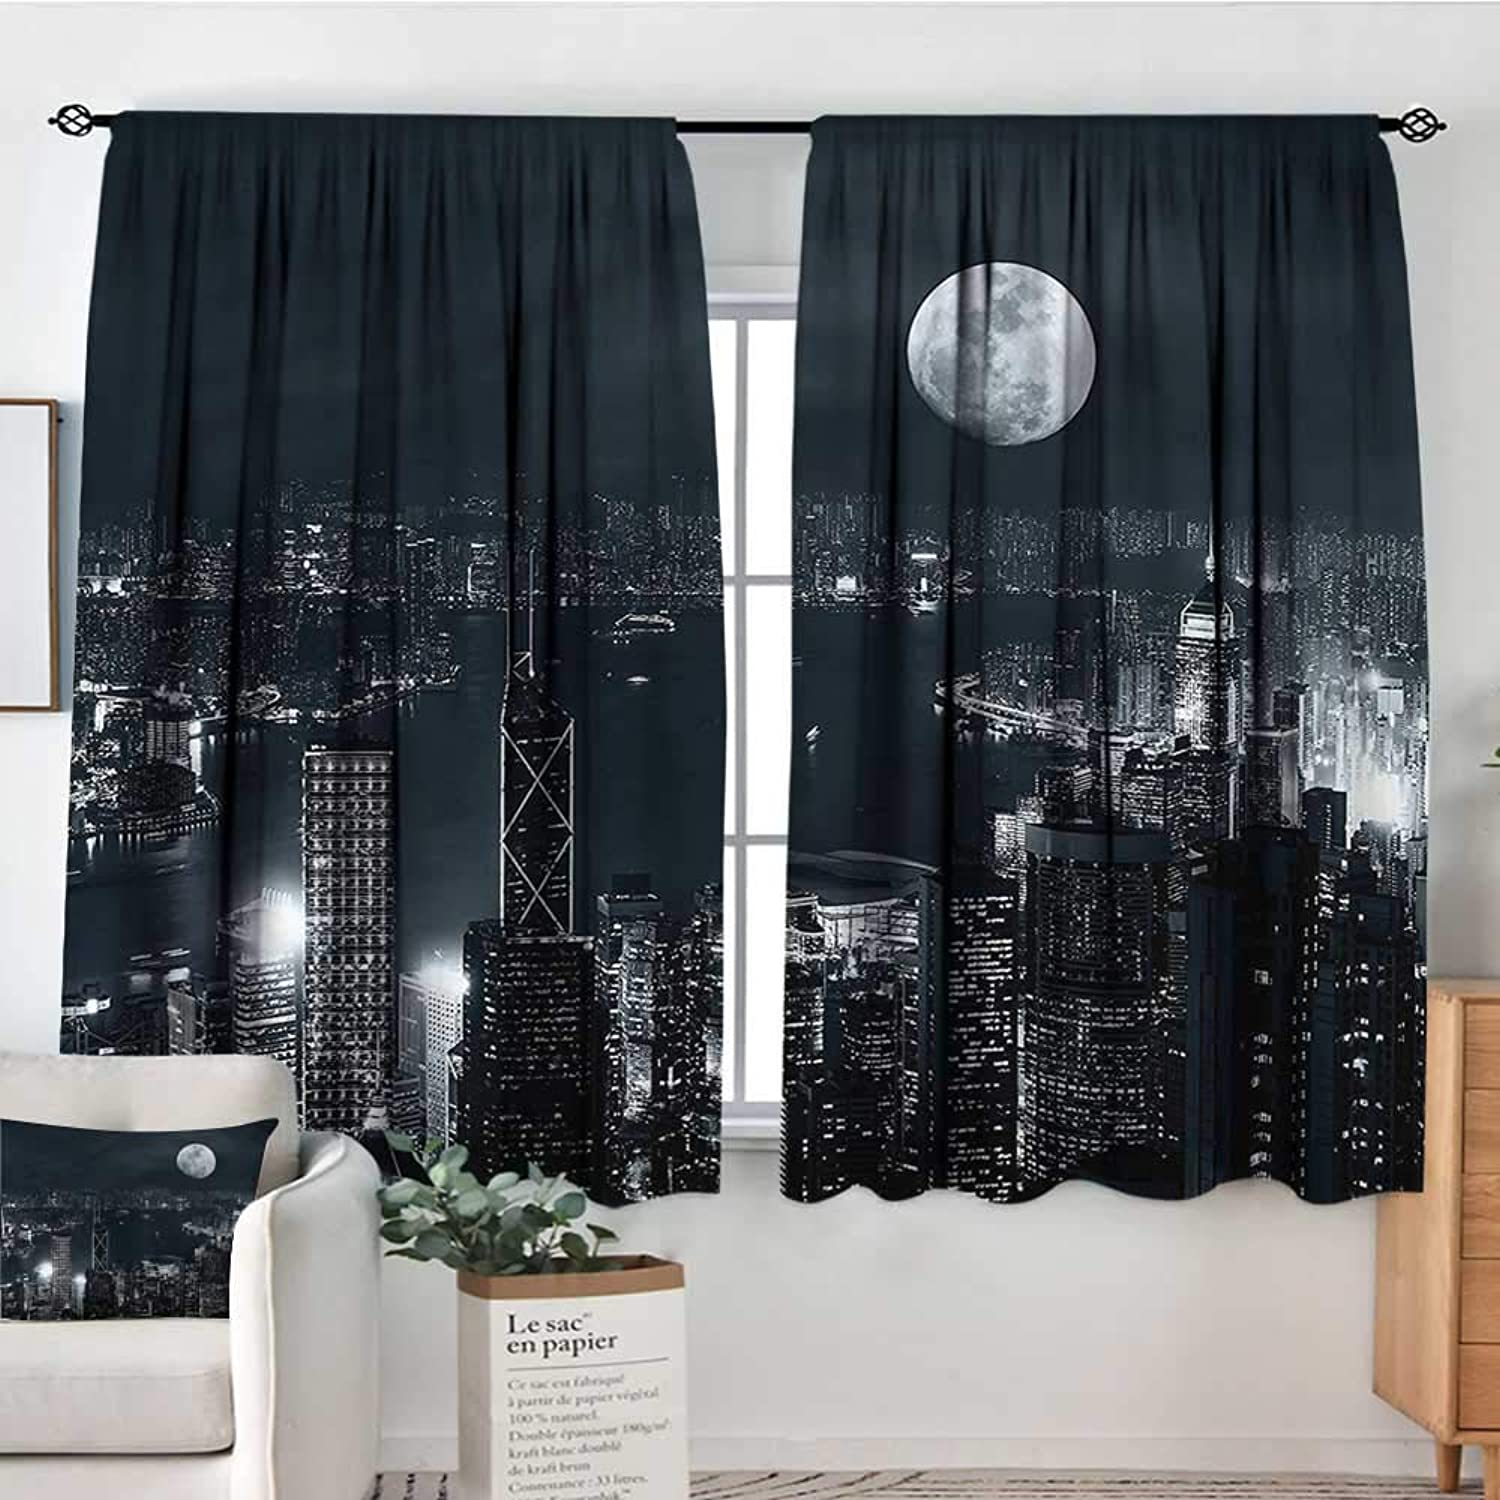 Sanring Modern,Bocking Ight Rod Curtains Hong Kong City at Night View 42 X63  for Baby Bedroom